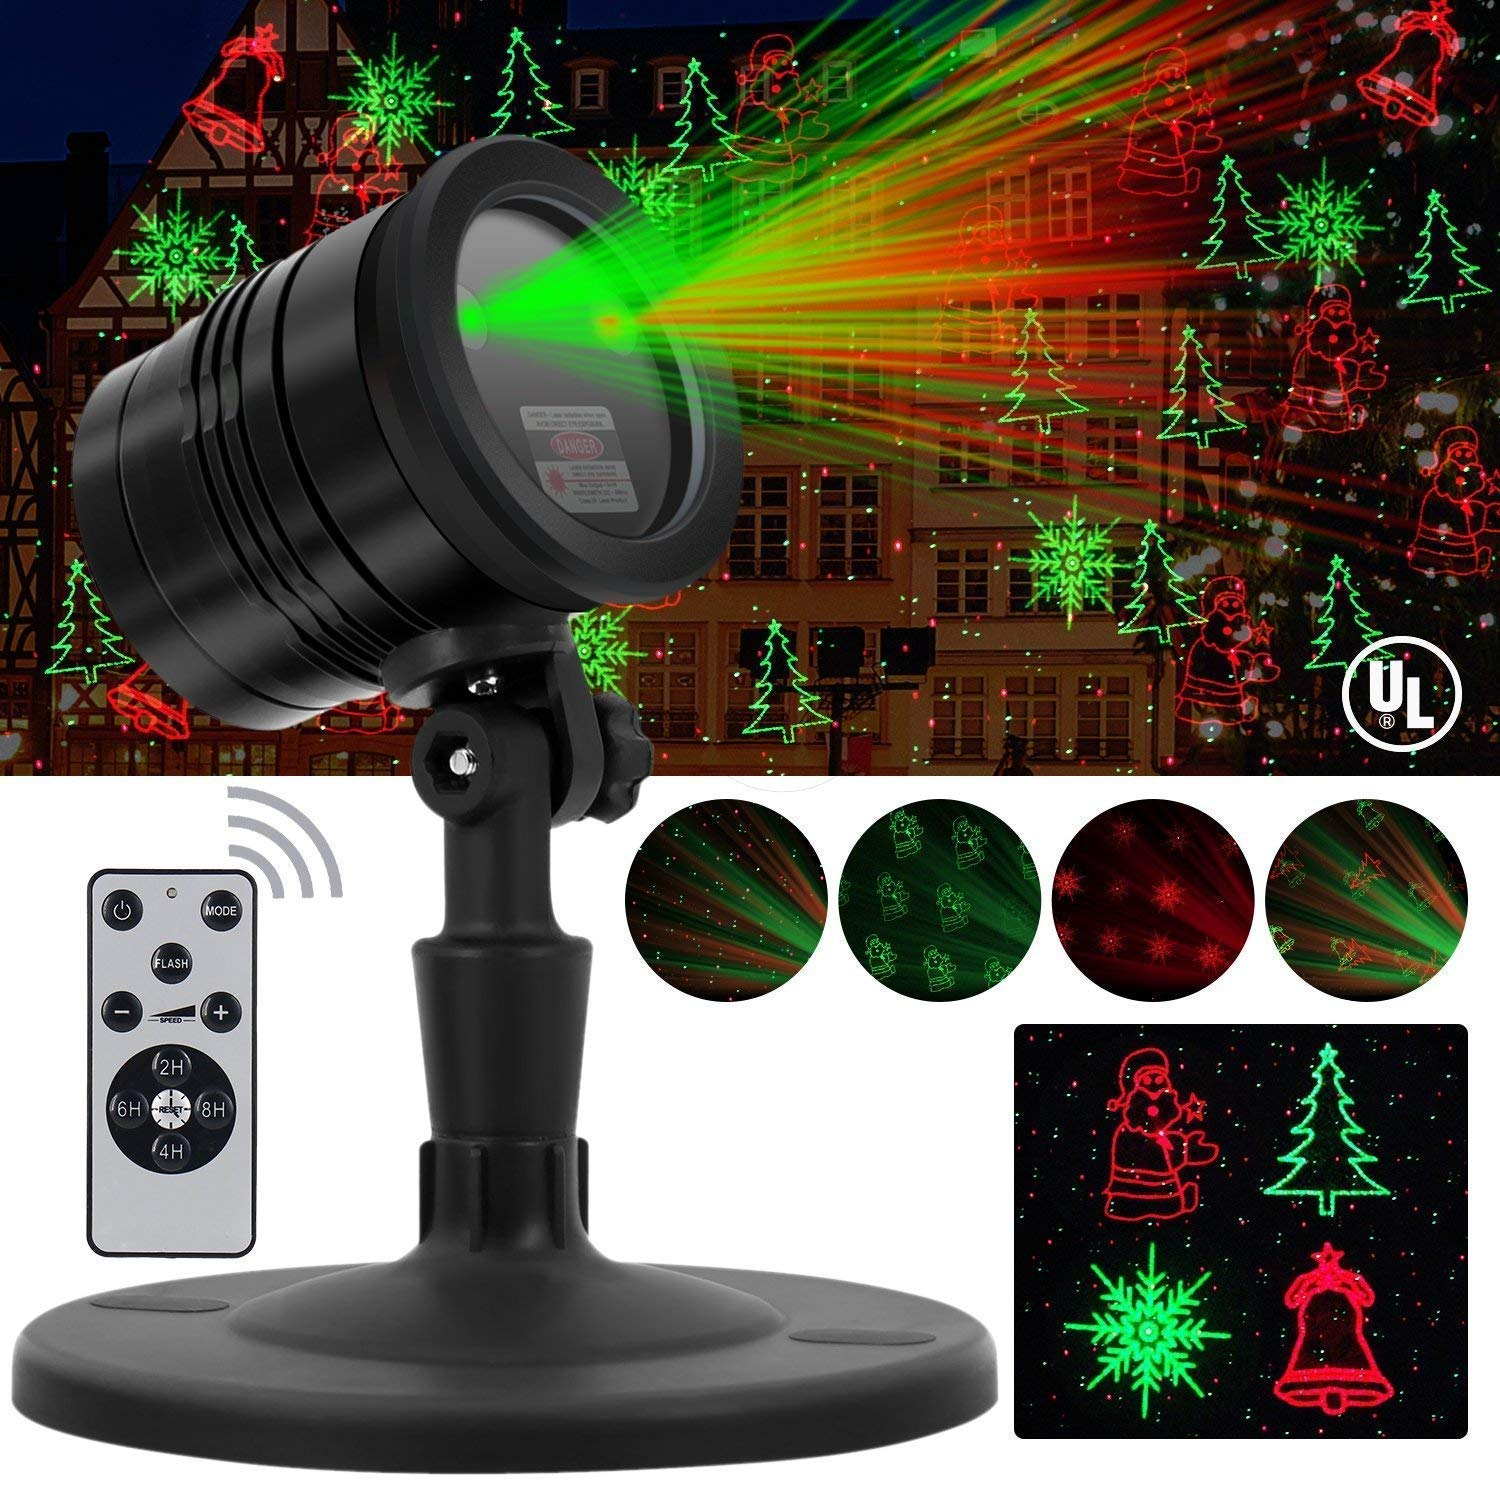 Christmas Laser Lights, Projector for Outdoor Garden Decorations - Waterproof & Timer Preset, Red & Green Slide Show in Lawn, Landscape, Holiday Party and Houses by Proteove (Image #1)